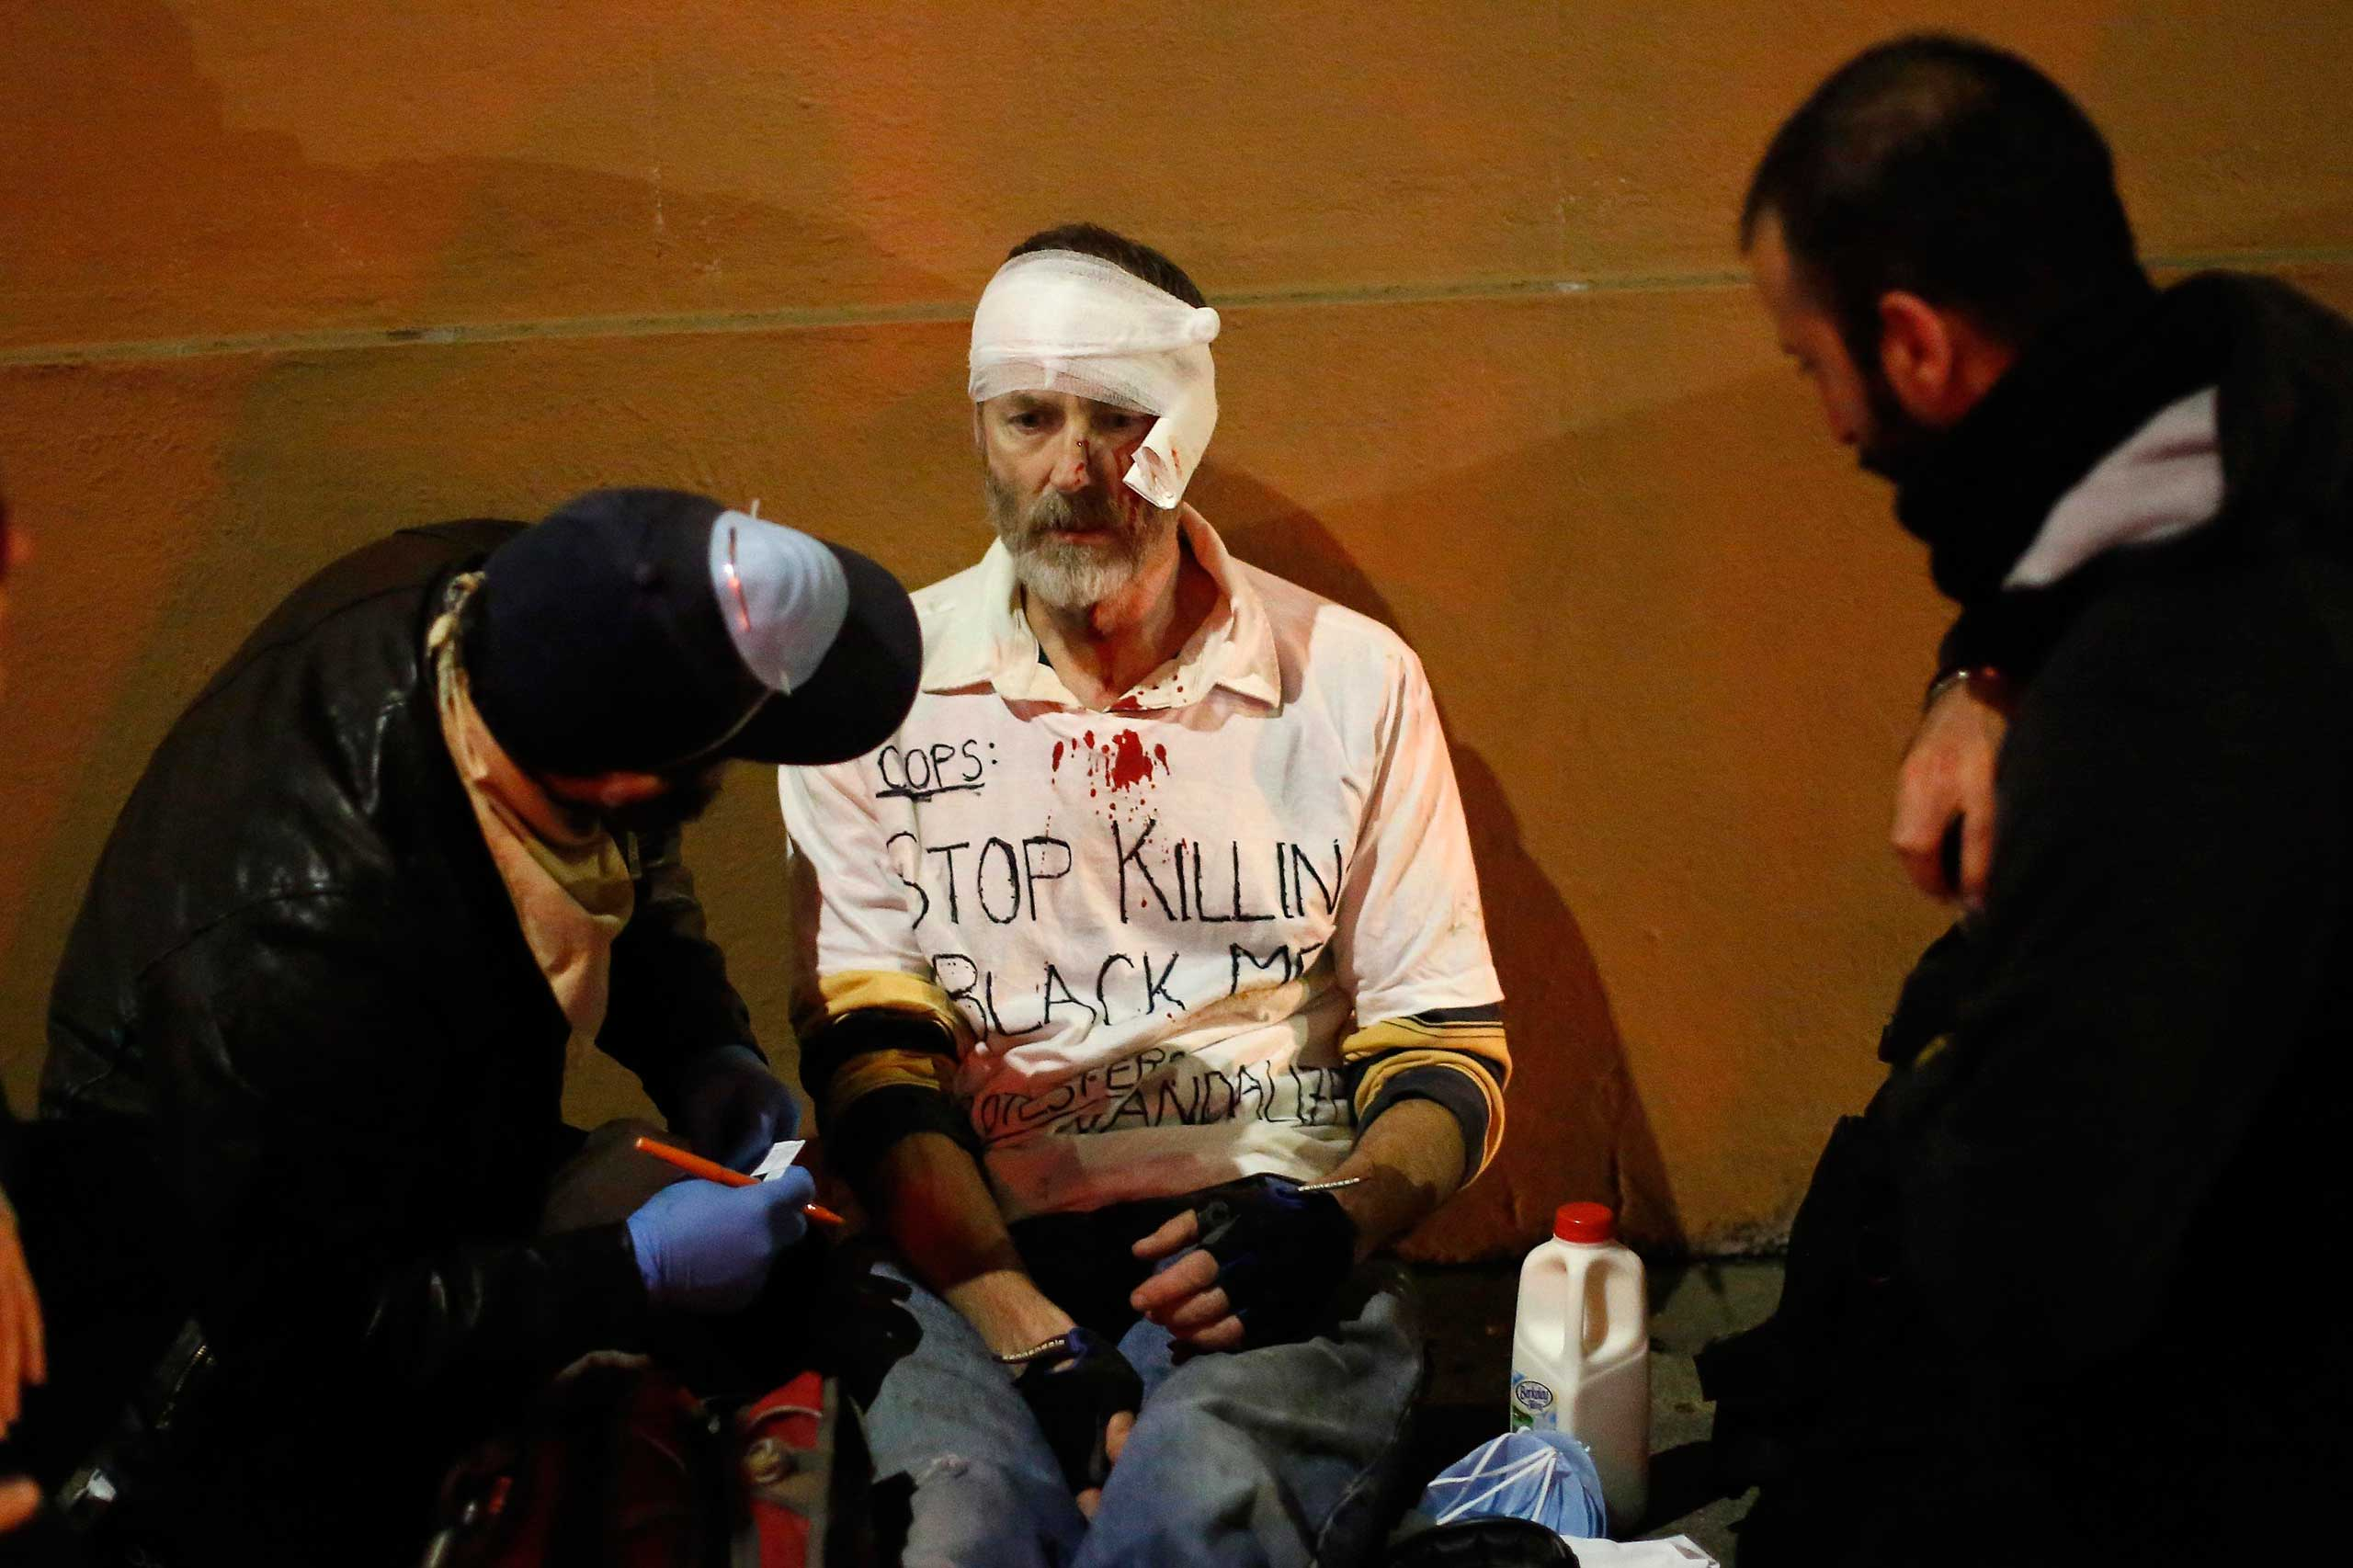 Medics tend to an injured protester after he was hit in the head while attempting to stop others from vandalizing a Radio Shack in Berkeley, Calif. on Dec. 7, 2014.